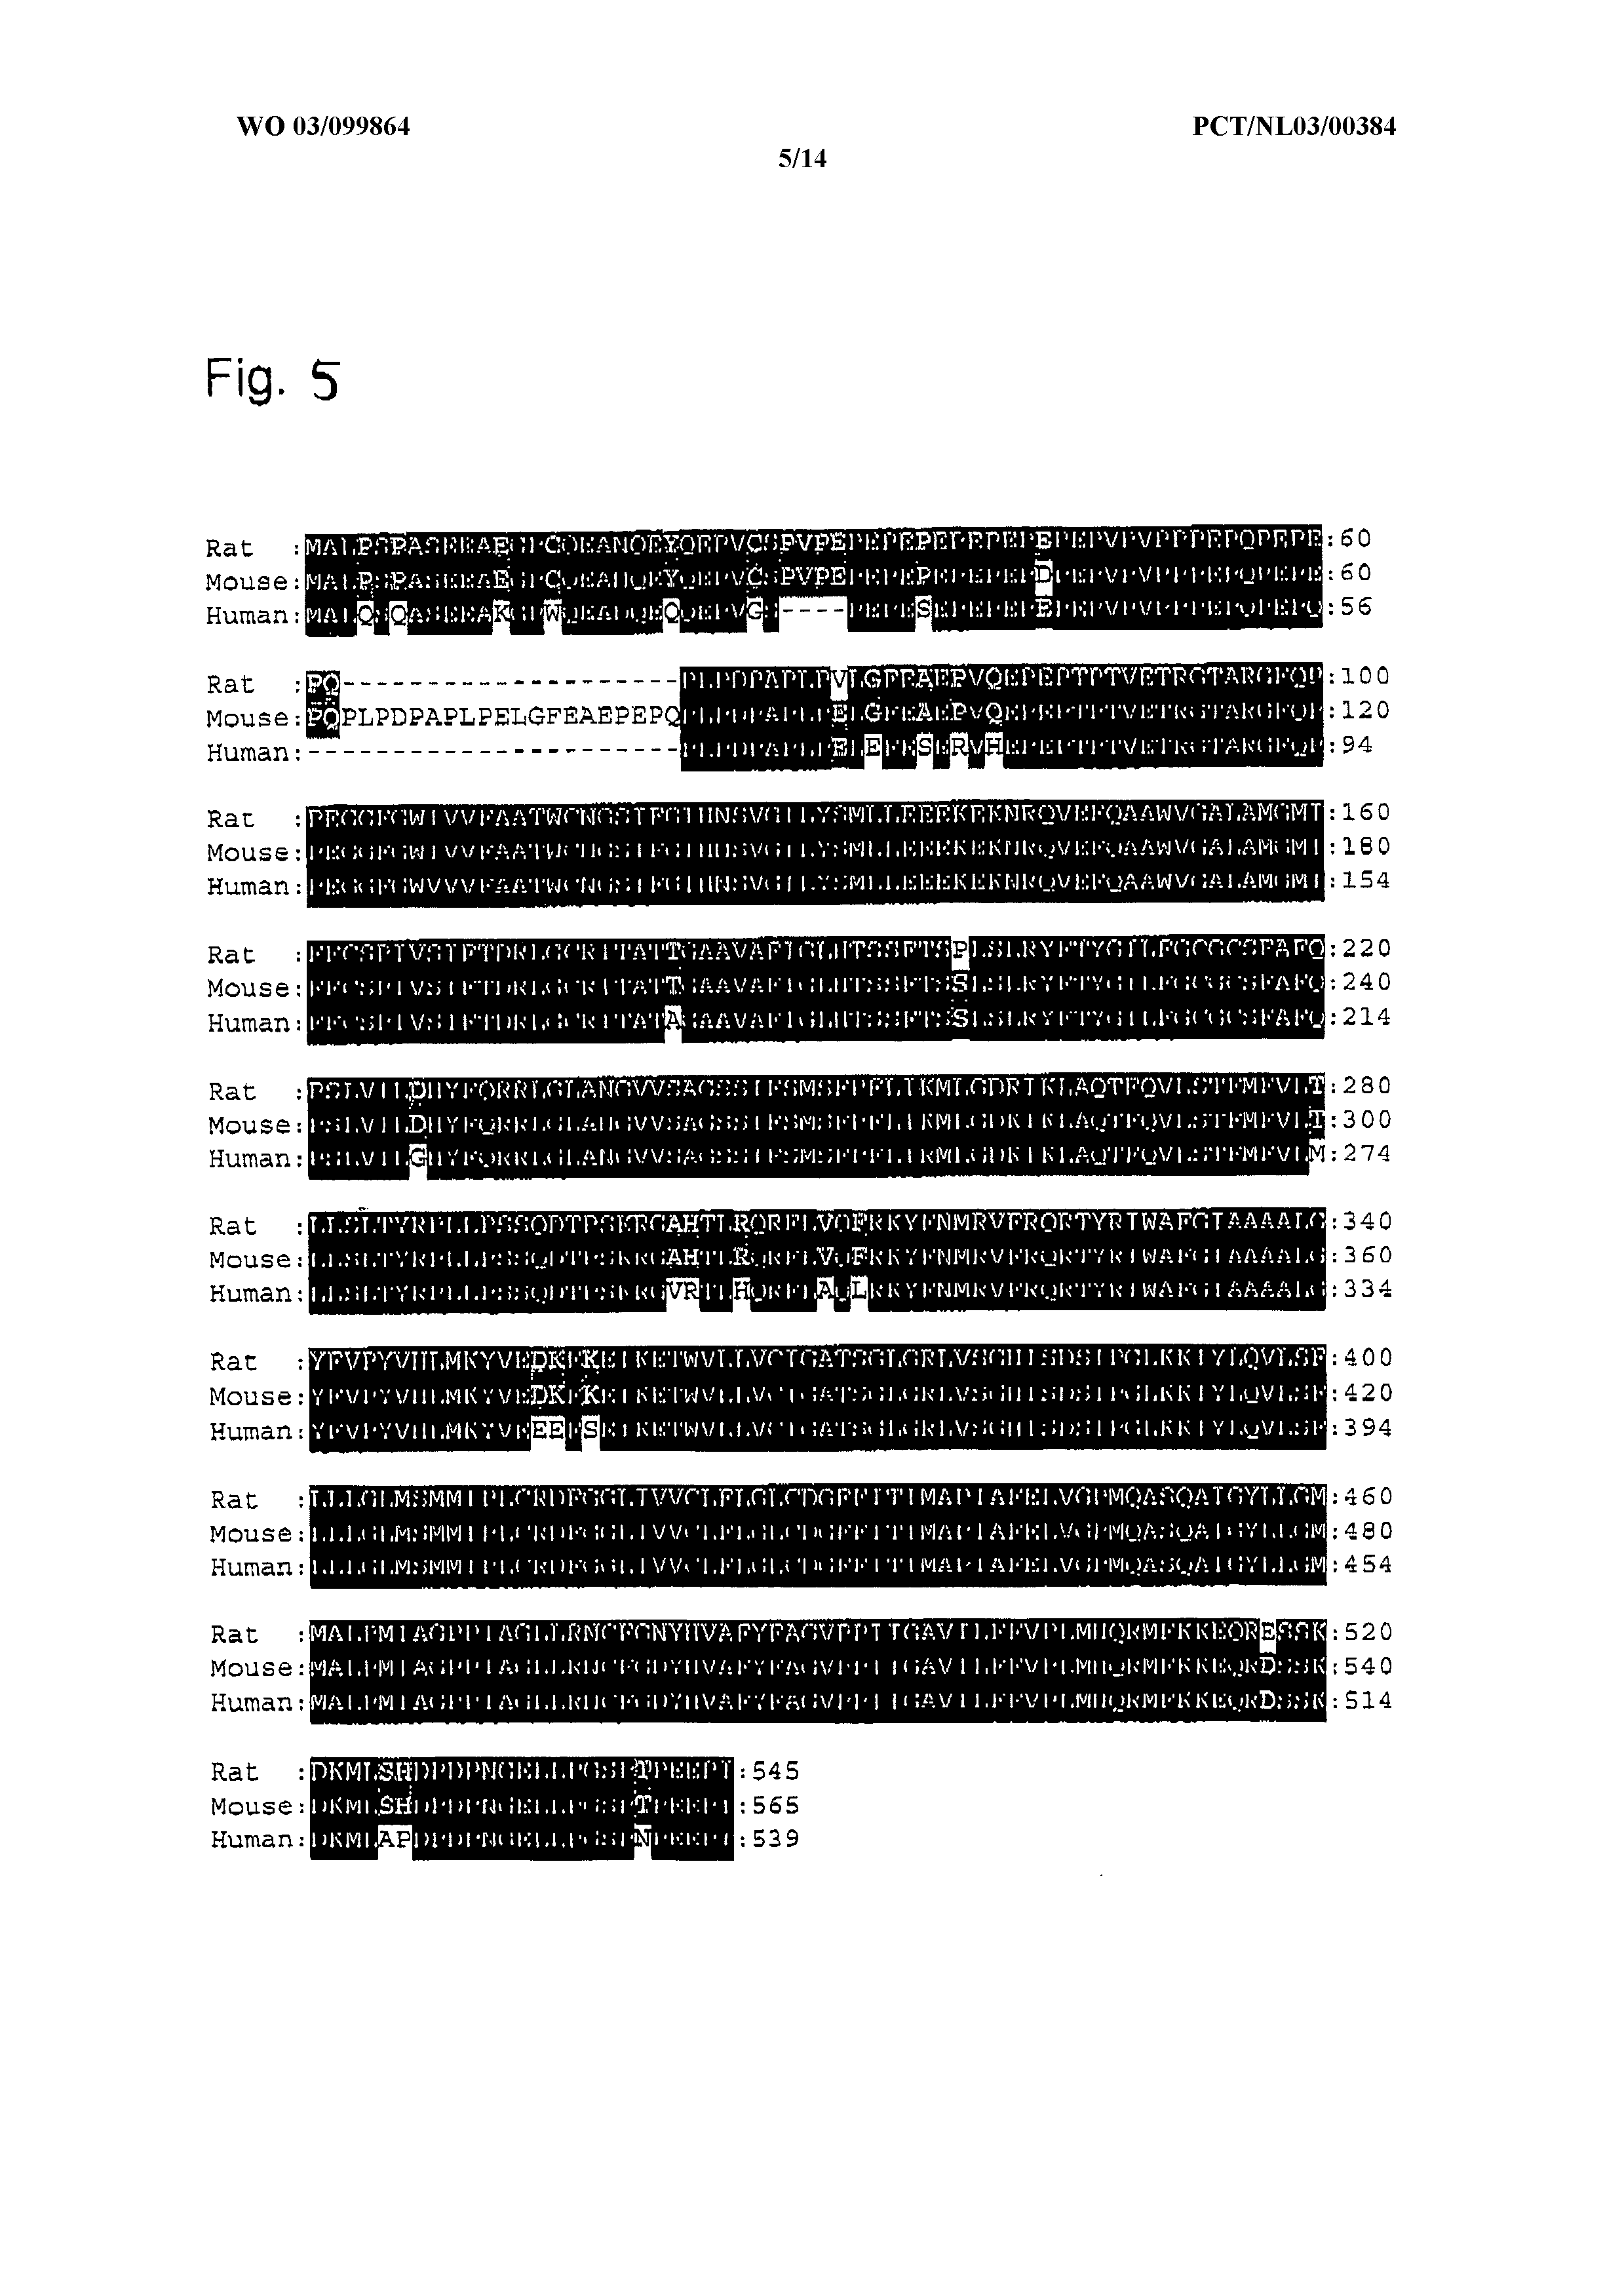 EP 1364962 A1 - Use Of Monocarboxylate Transporter Proteins